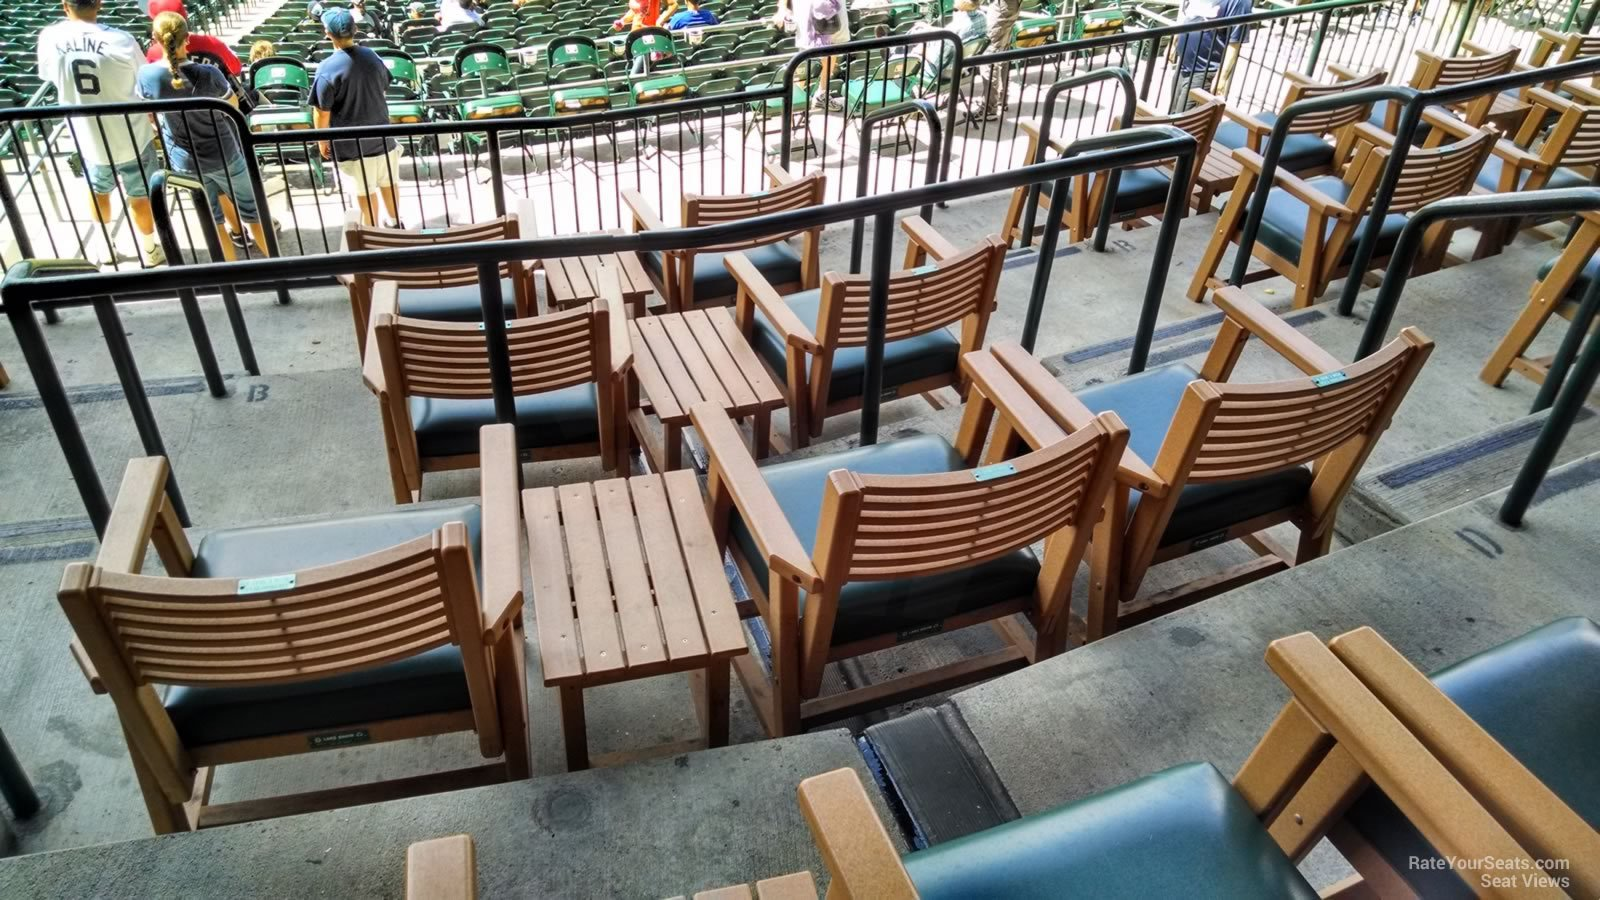 Premium Seating in the Tigers Den at Comerica Park